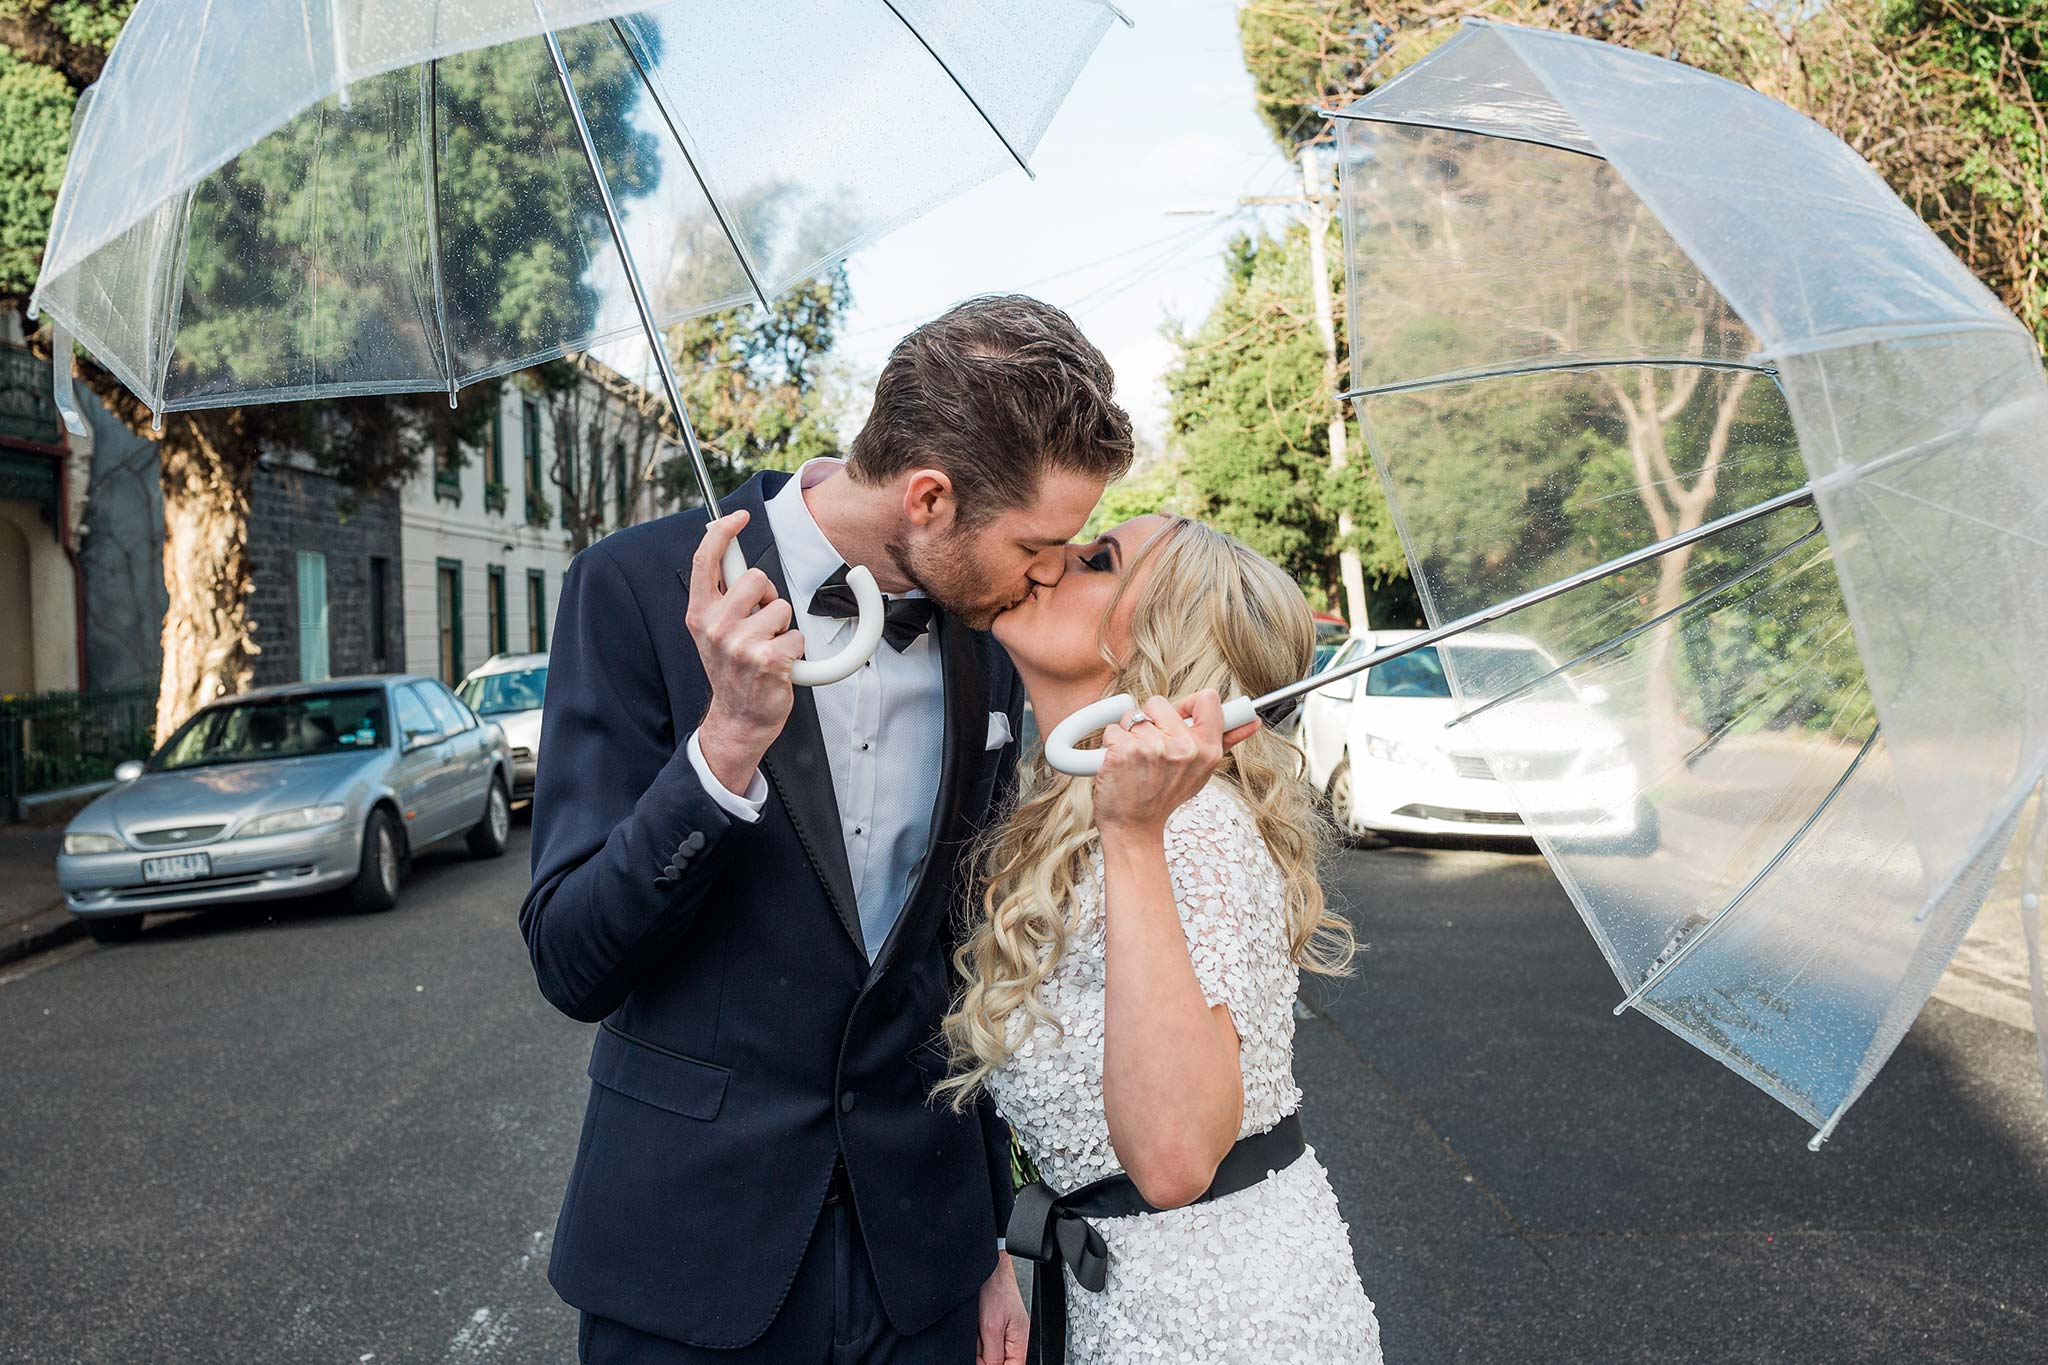 melbourne-fitzroy-st-andrews-conservatory-pumphouse-wedding-venue-bride-groom-kiss